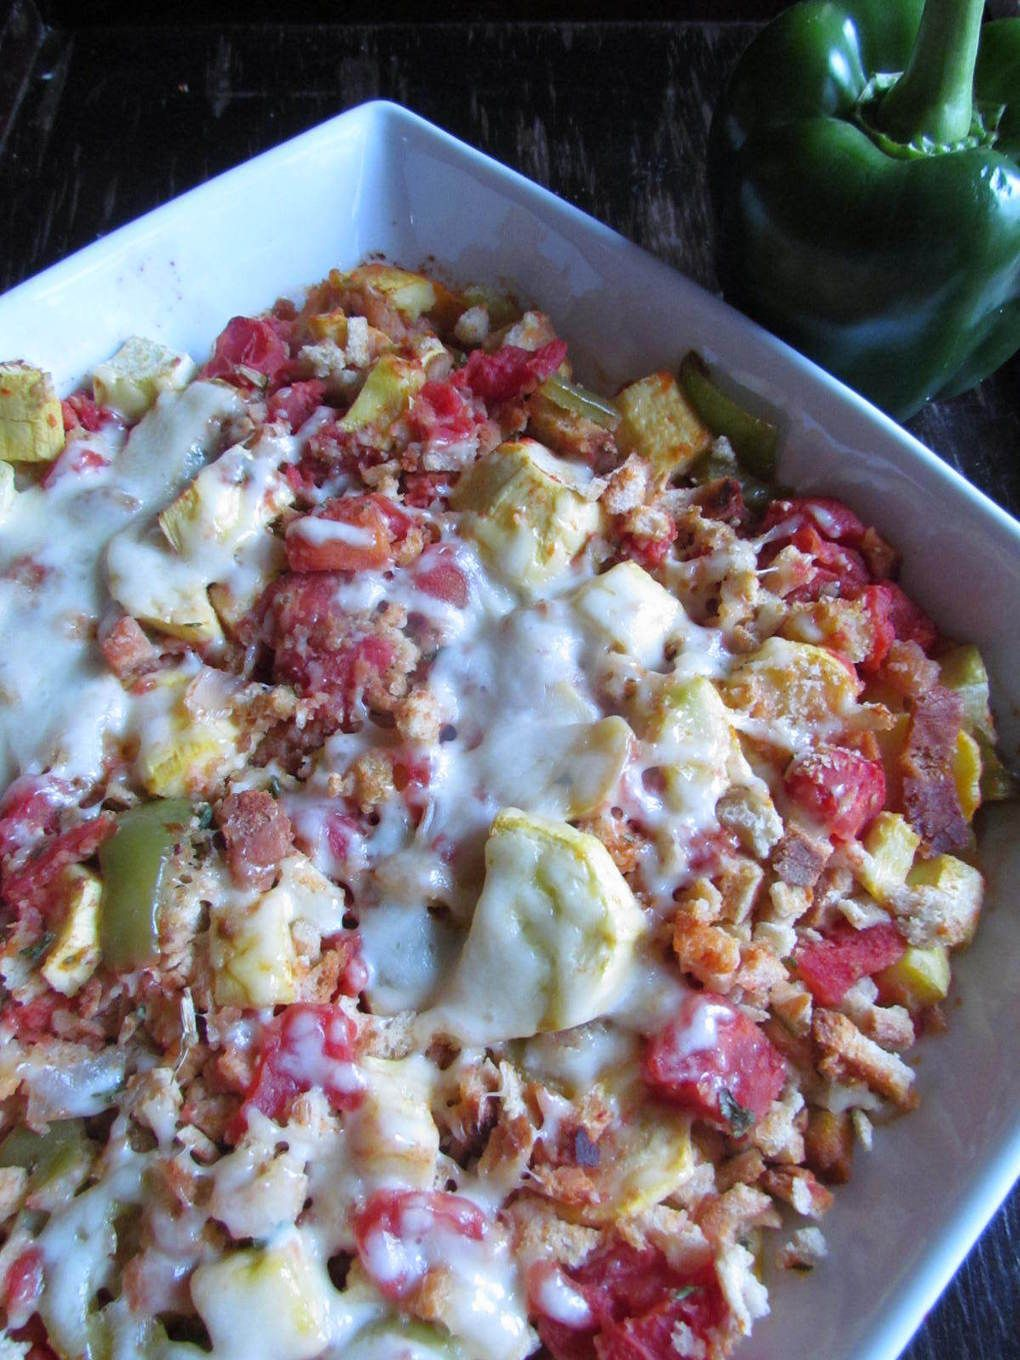 Ratatouille bake an easy healthy dinner recipe easy healthy ratatouille bake an easy healthy dinner recipe the man with the golden tongs goes all out on health forumfinder Gallery